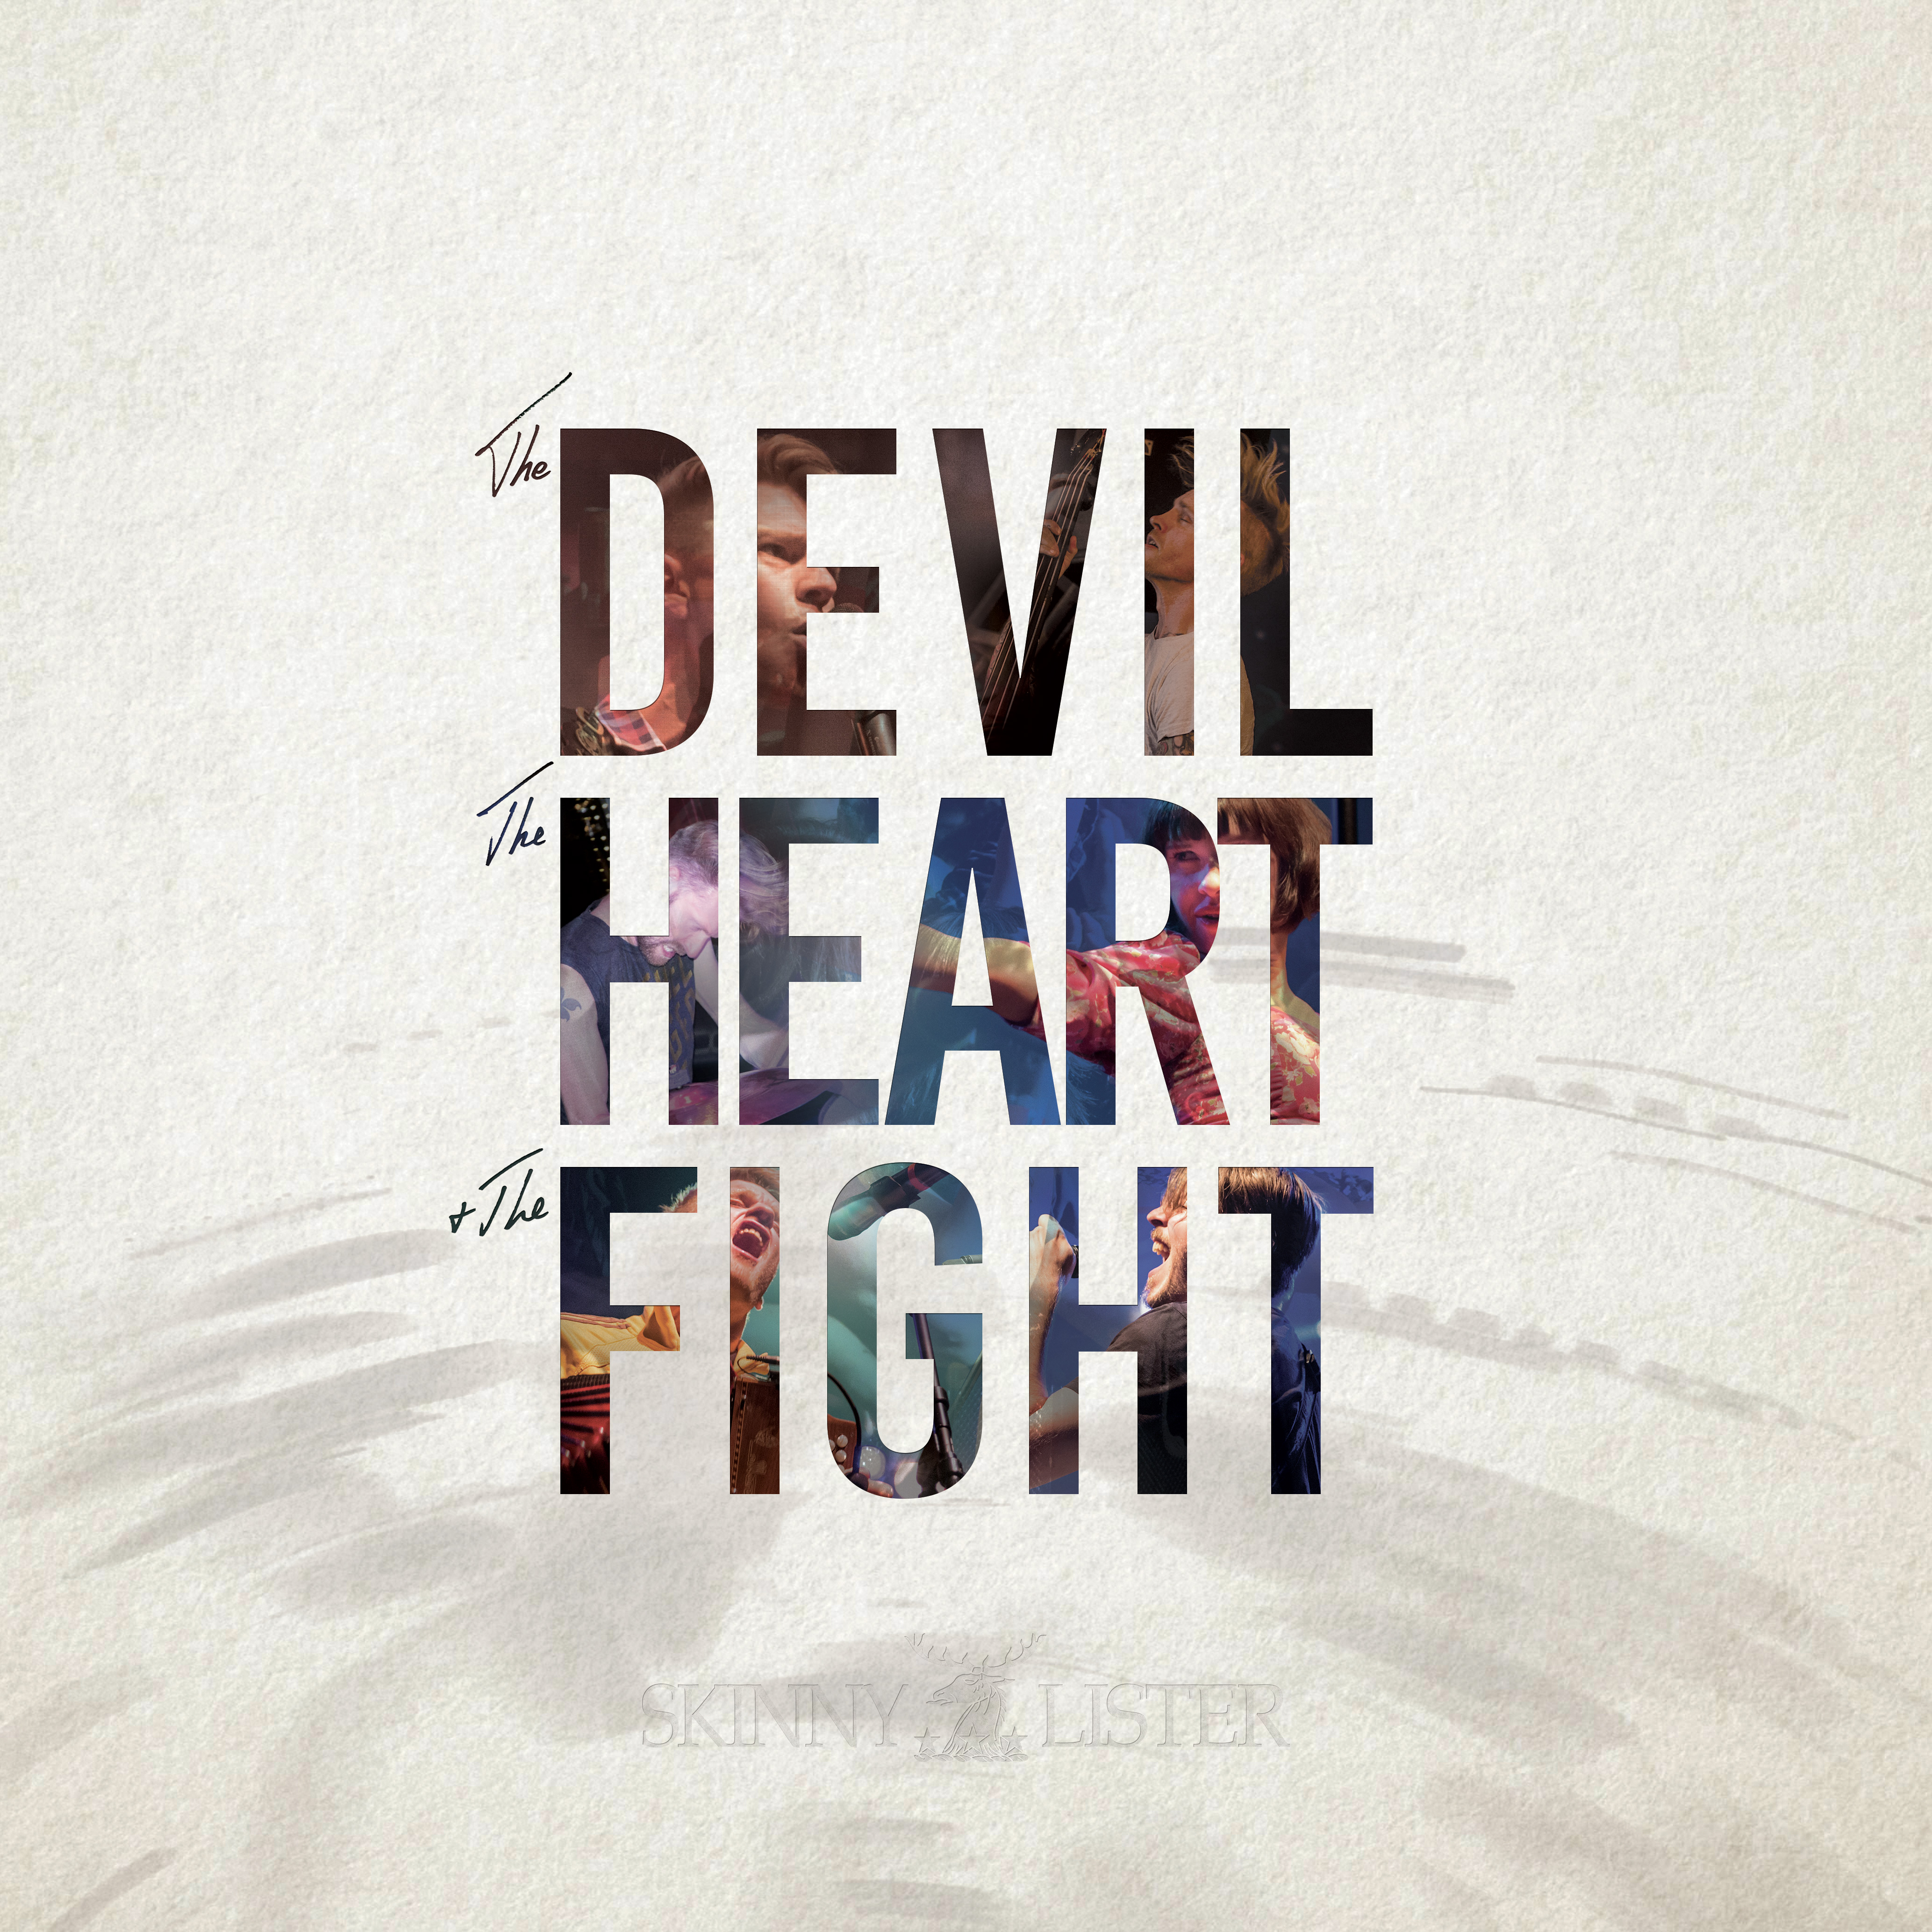 'The Devil, The Heart & The Fight' OUT NOW!